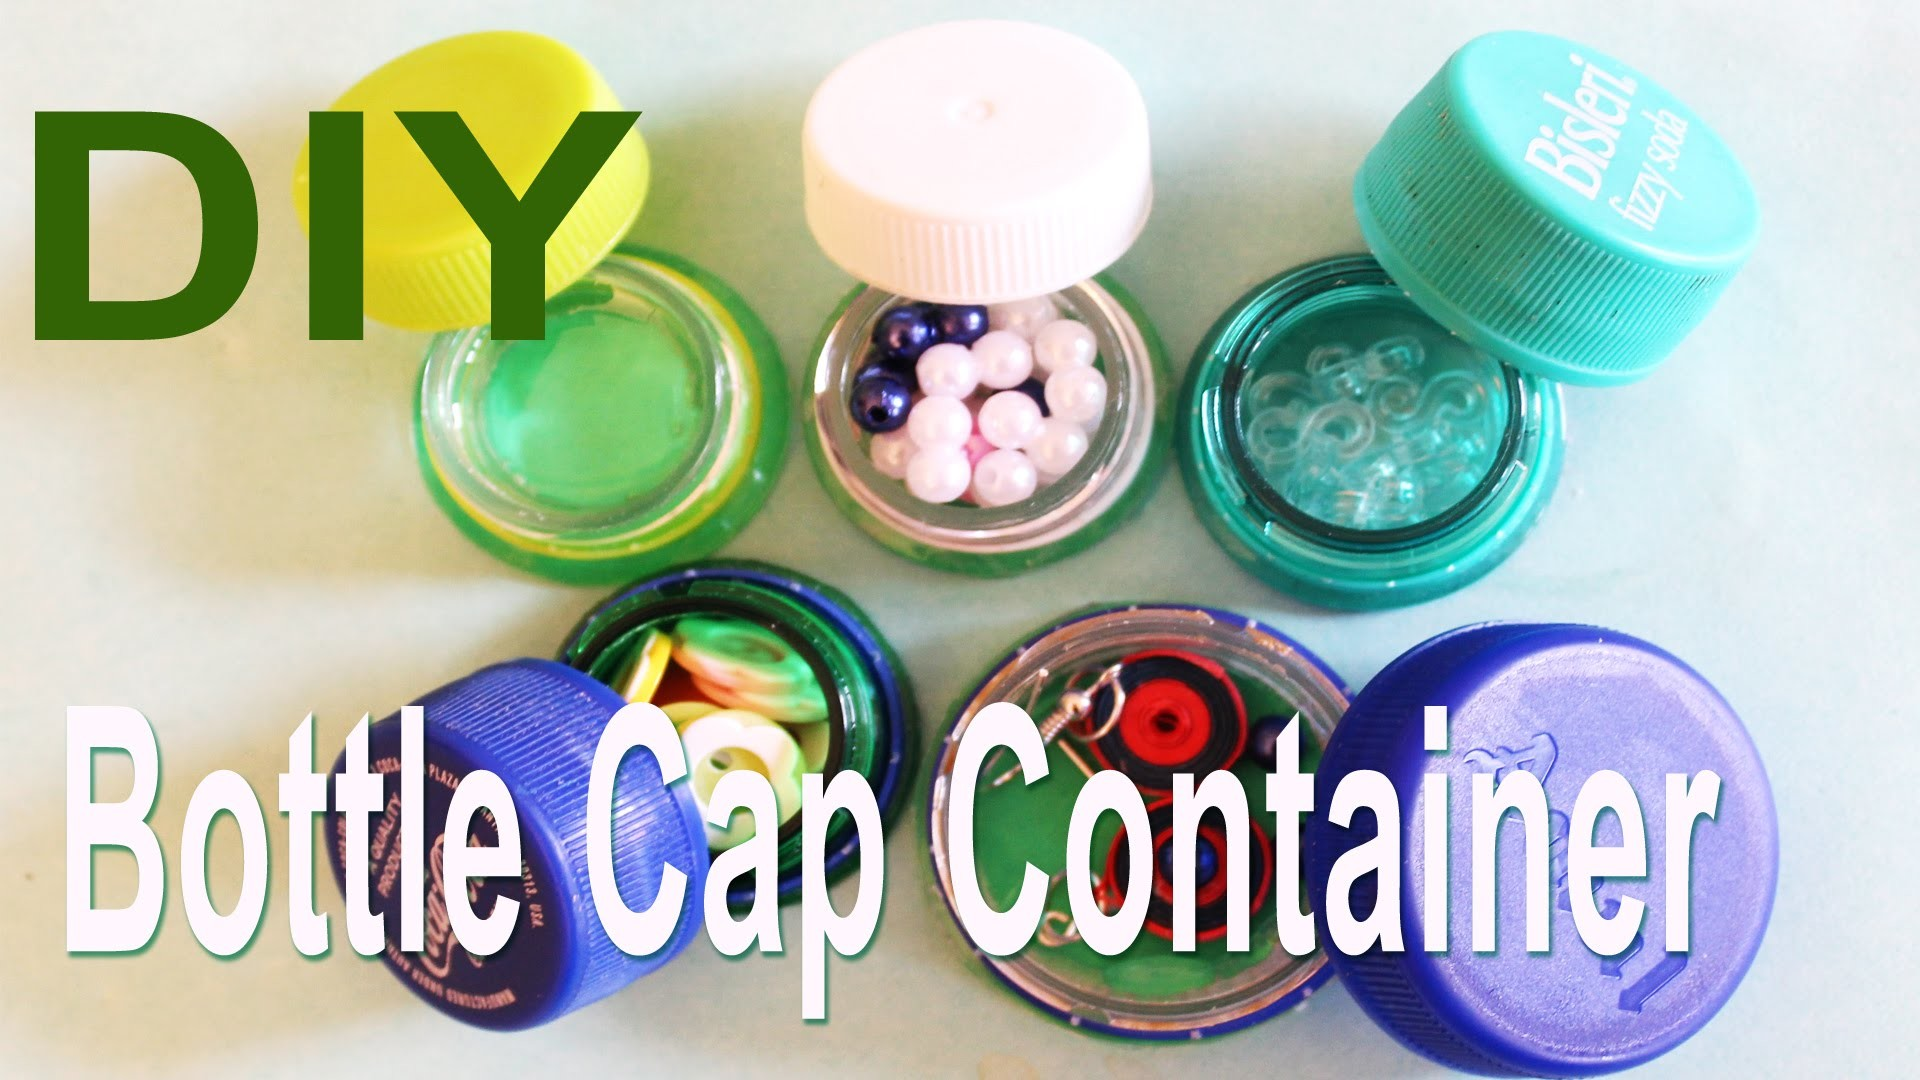 Recycle : DIY Mini Bottle Cap Container